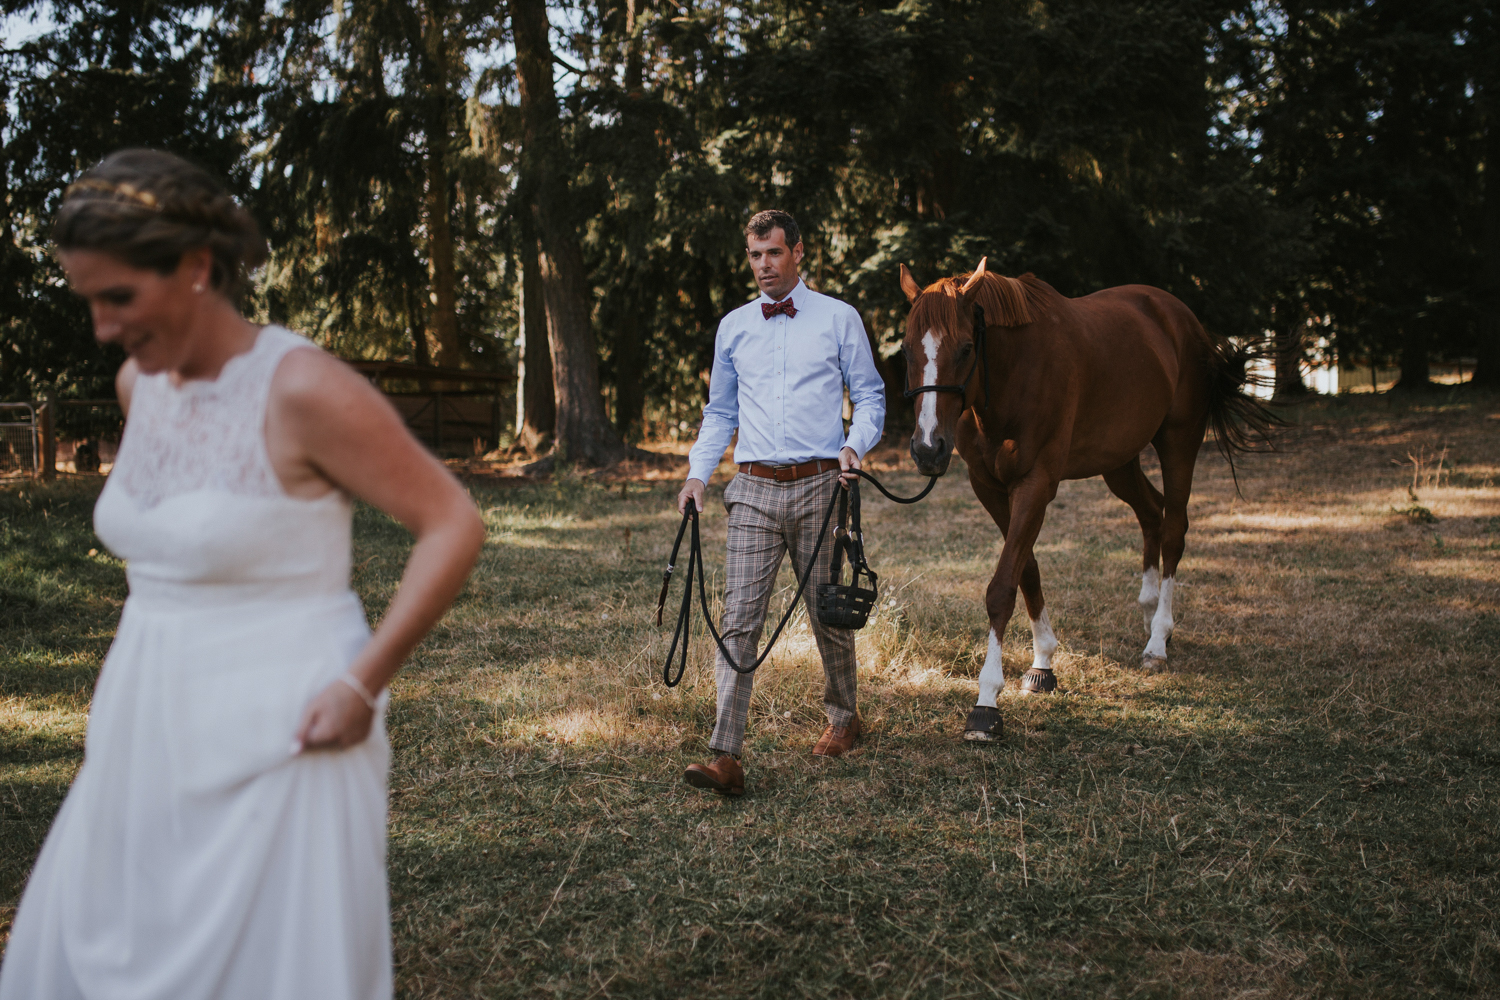 The Groom walking a horse with his Bride King Francis Forest wedding Vancouver Island